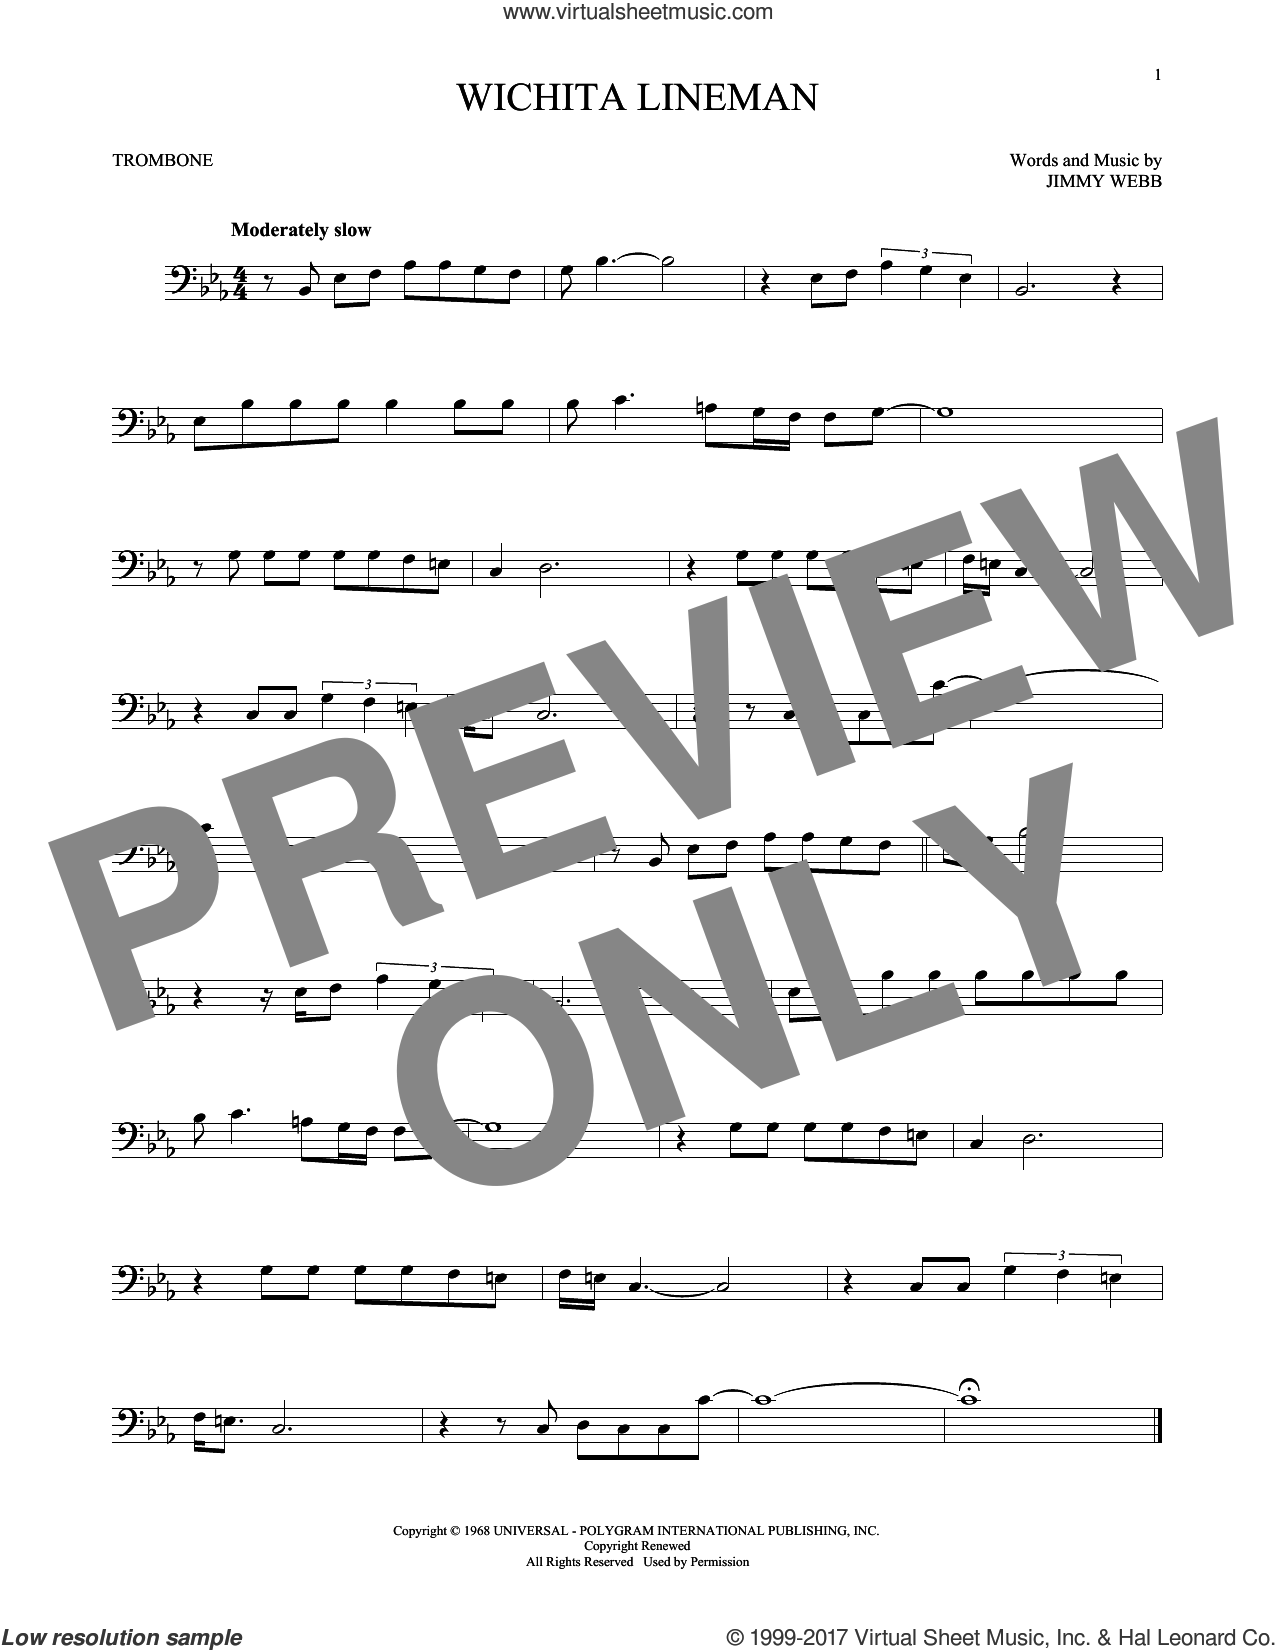 Wichita Lineman sheet music for trombone solo by Glen Campbell and Jimmy Webb. Score Image Preview.